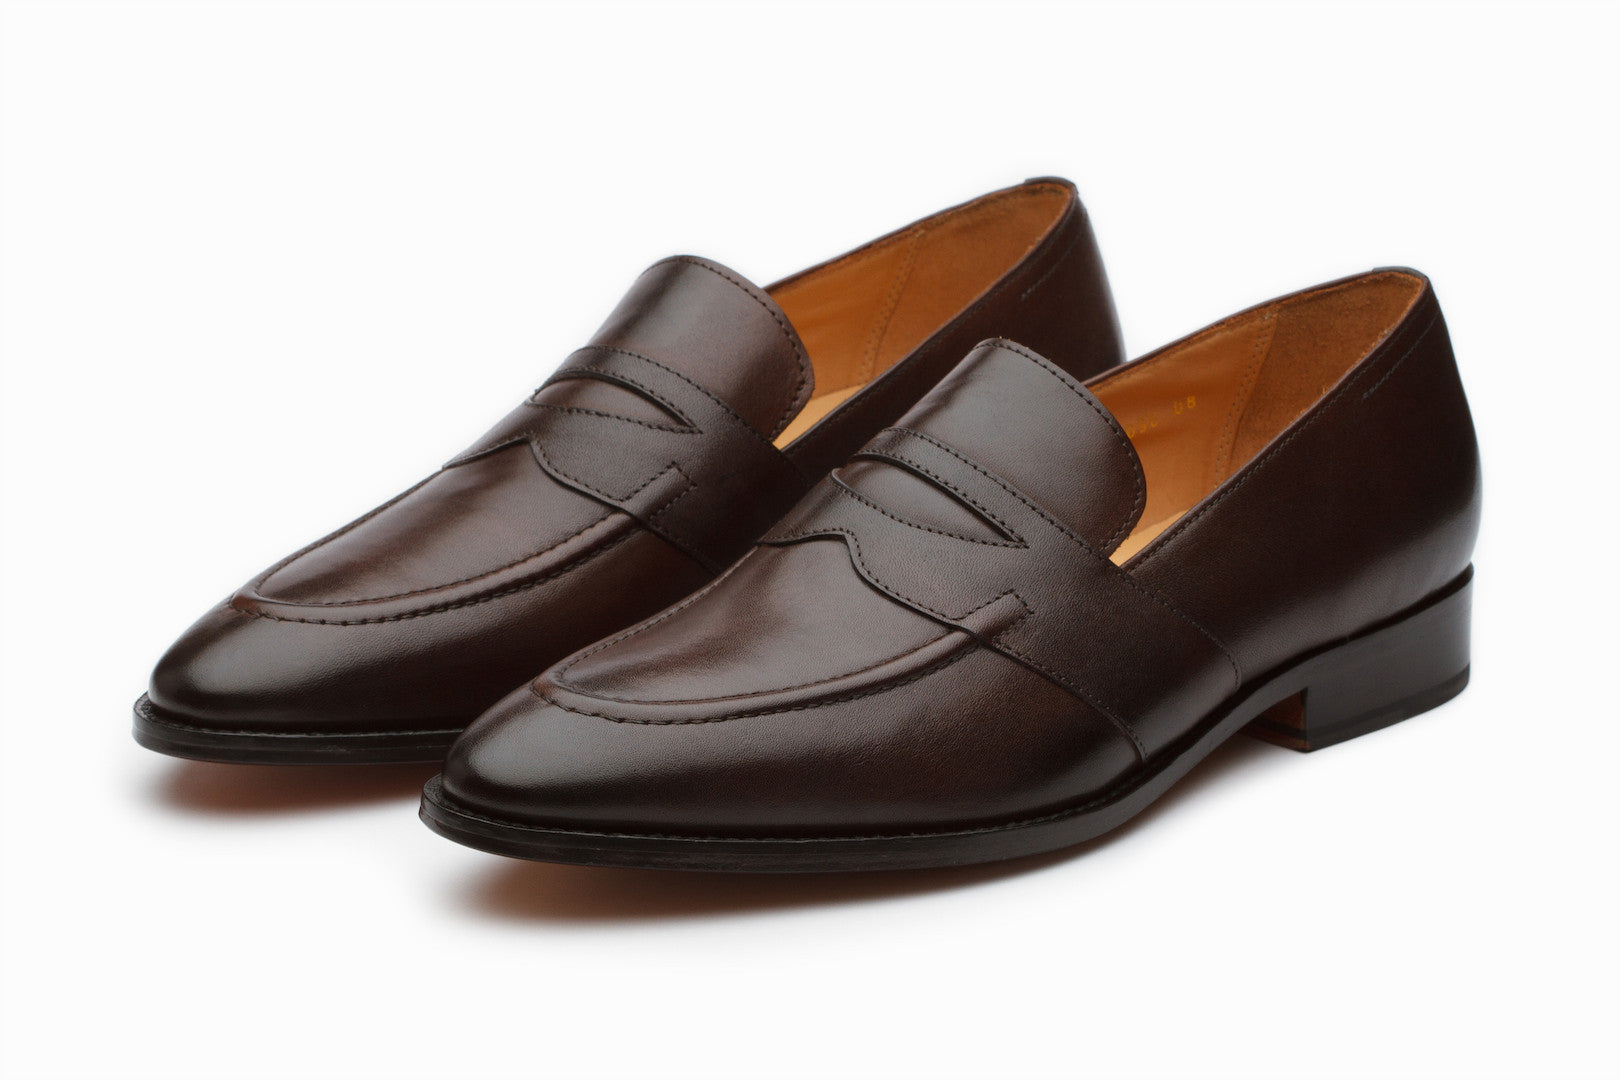 Loafers - Saddle Strap Loafer - Brown ( UK 7.5, 10.5, 11.5 & 12.5 Only)